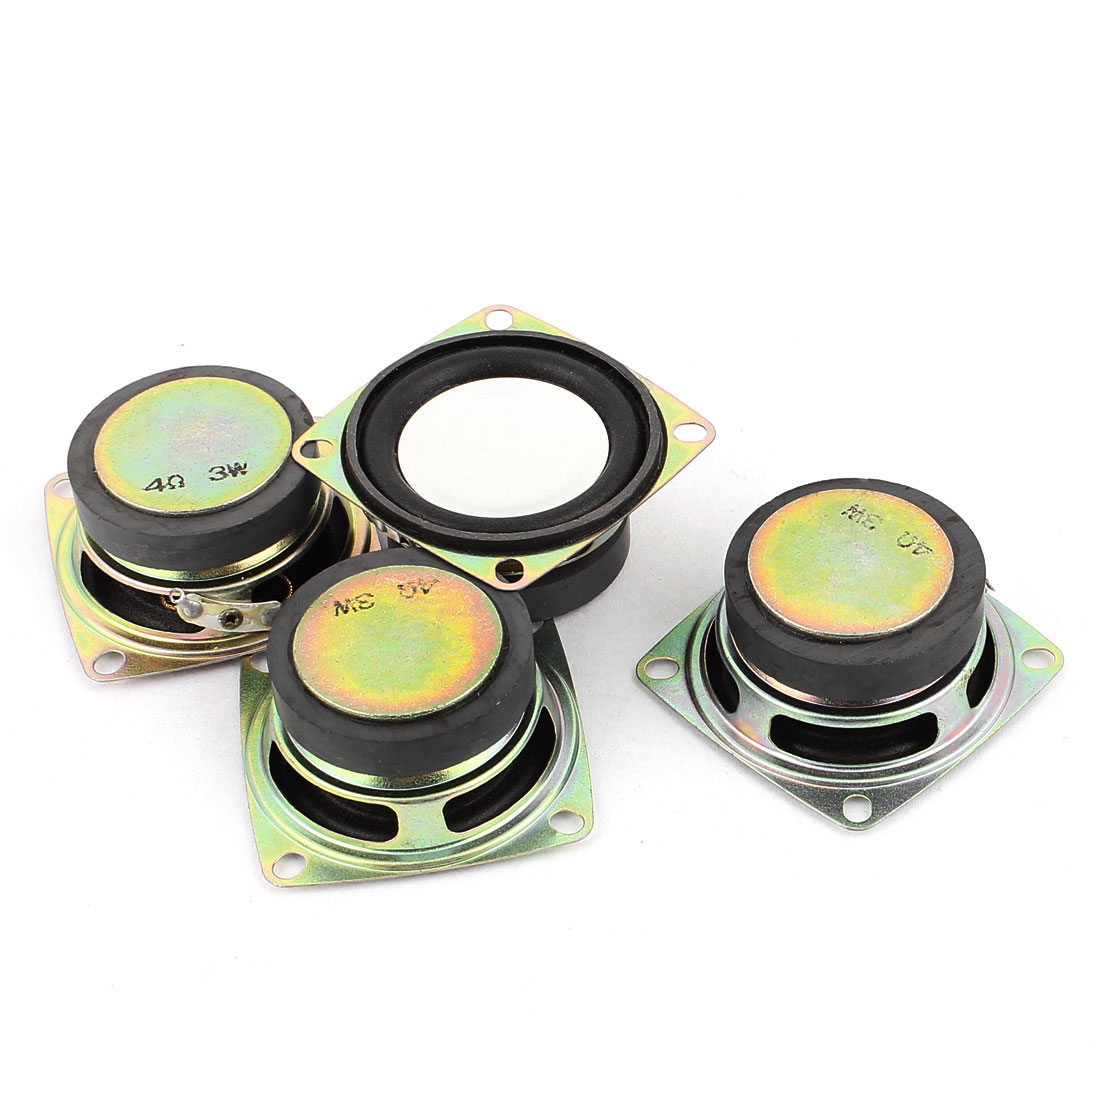 3W 4 Ohm External Magnet Speaker Loudspeaker 52 x 52 x 23mm 4Pcs